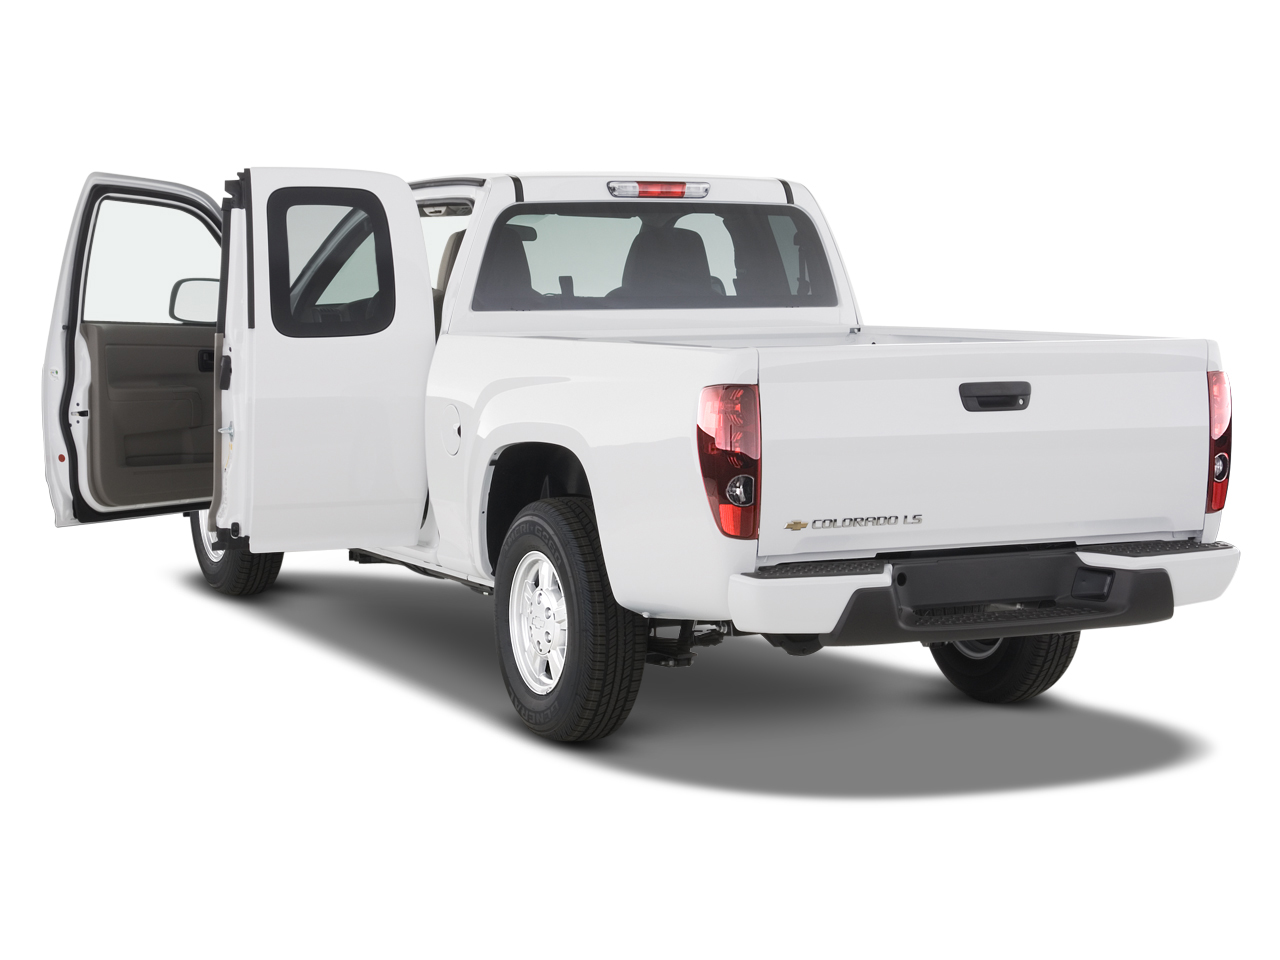 2009 chevy colorado and 2009 gmc canyon first drive for 10 door truck